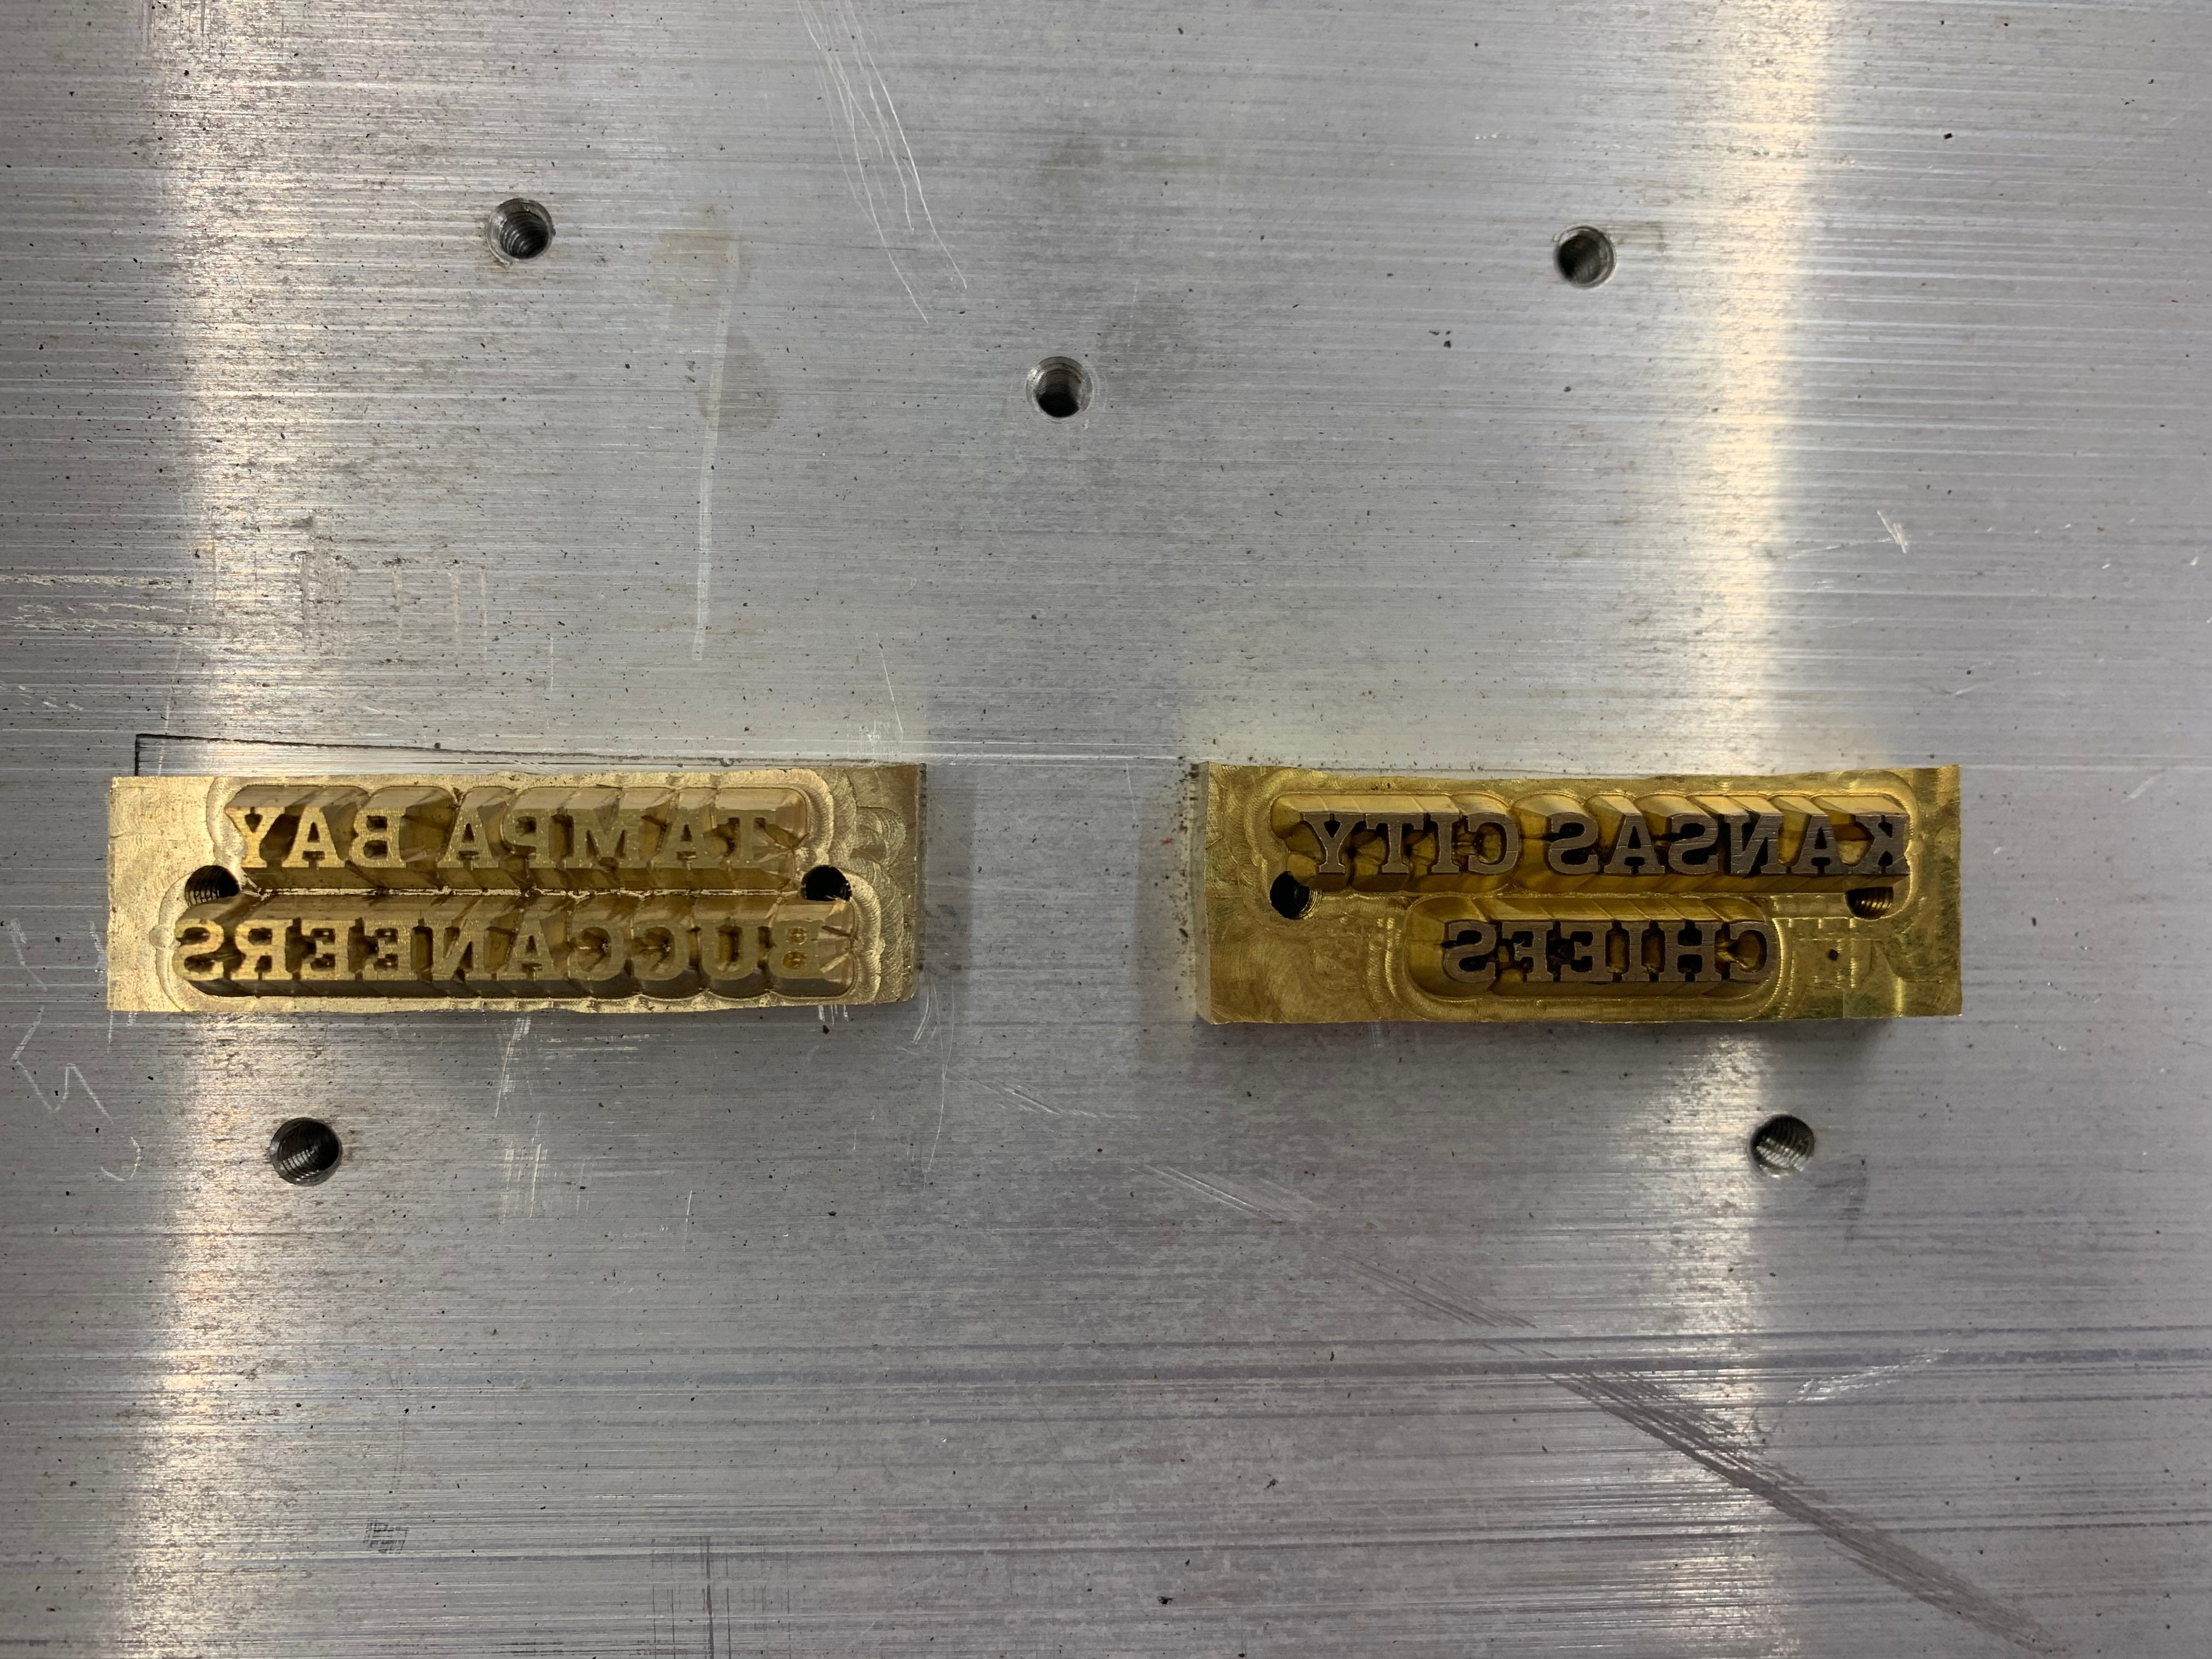 a graphics plate with Chiefs and Buccaneers team names